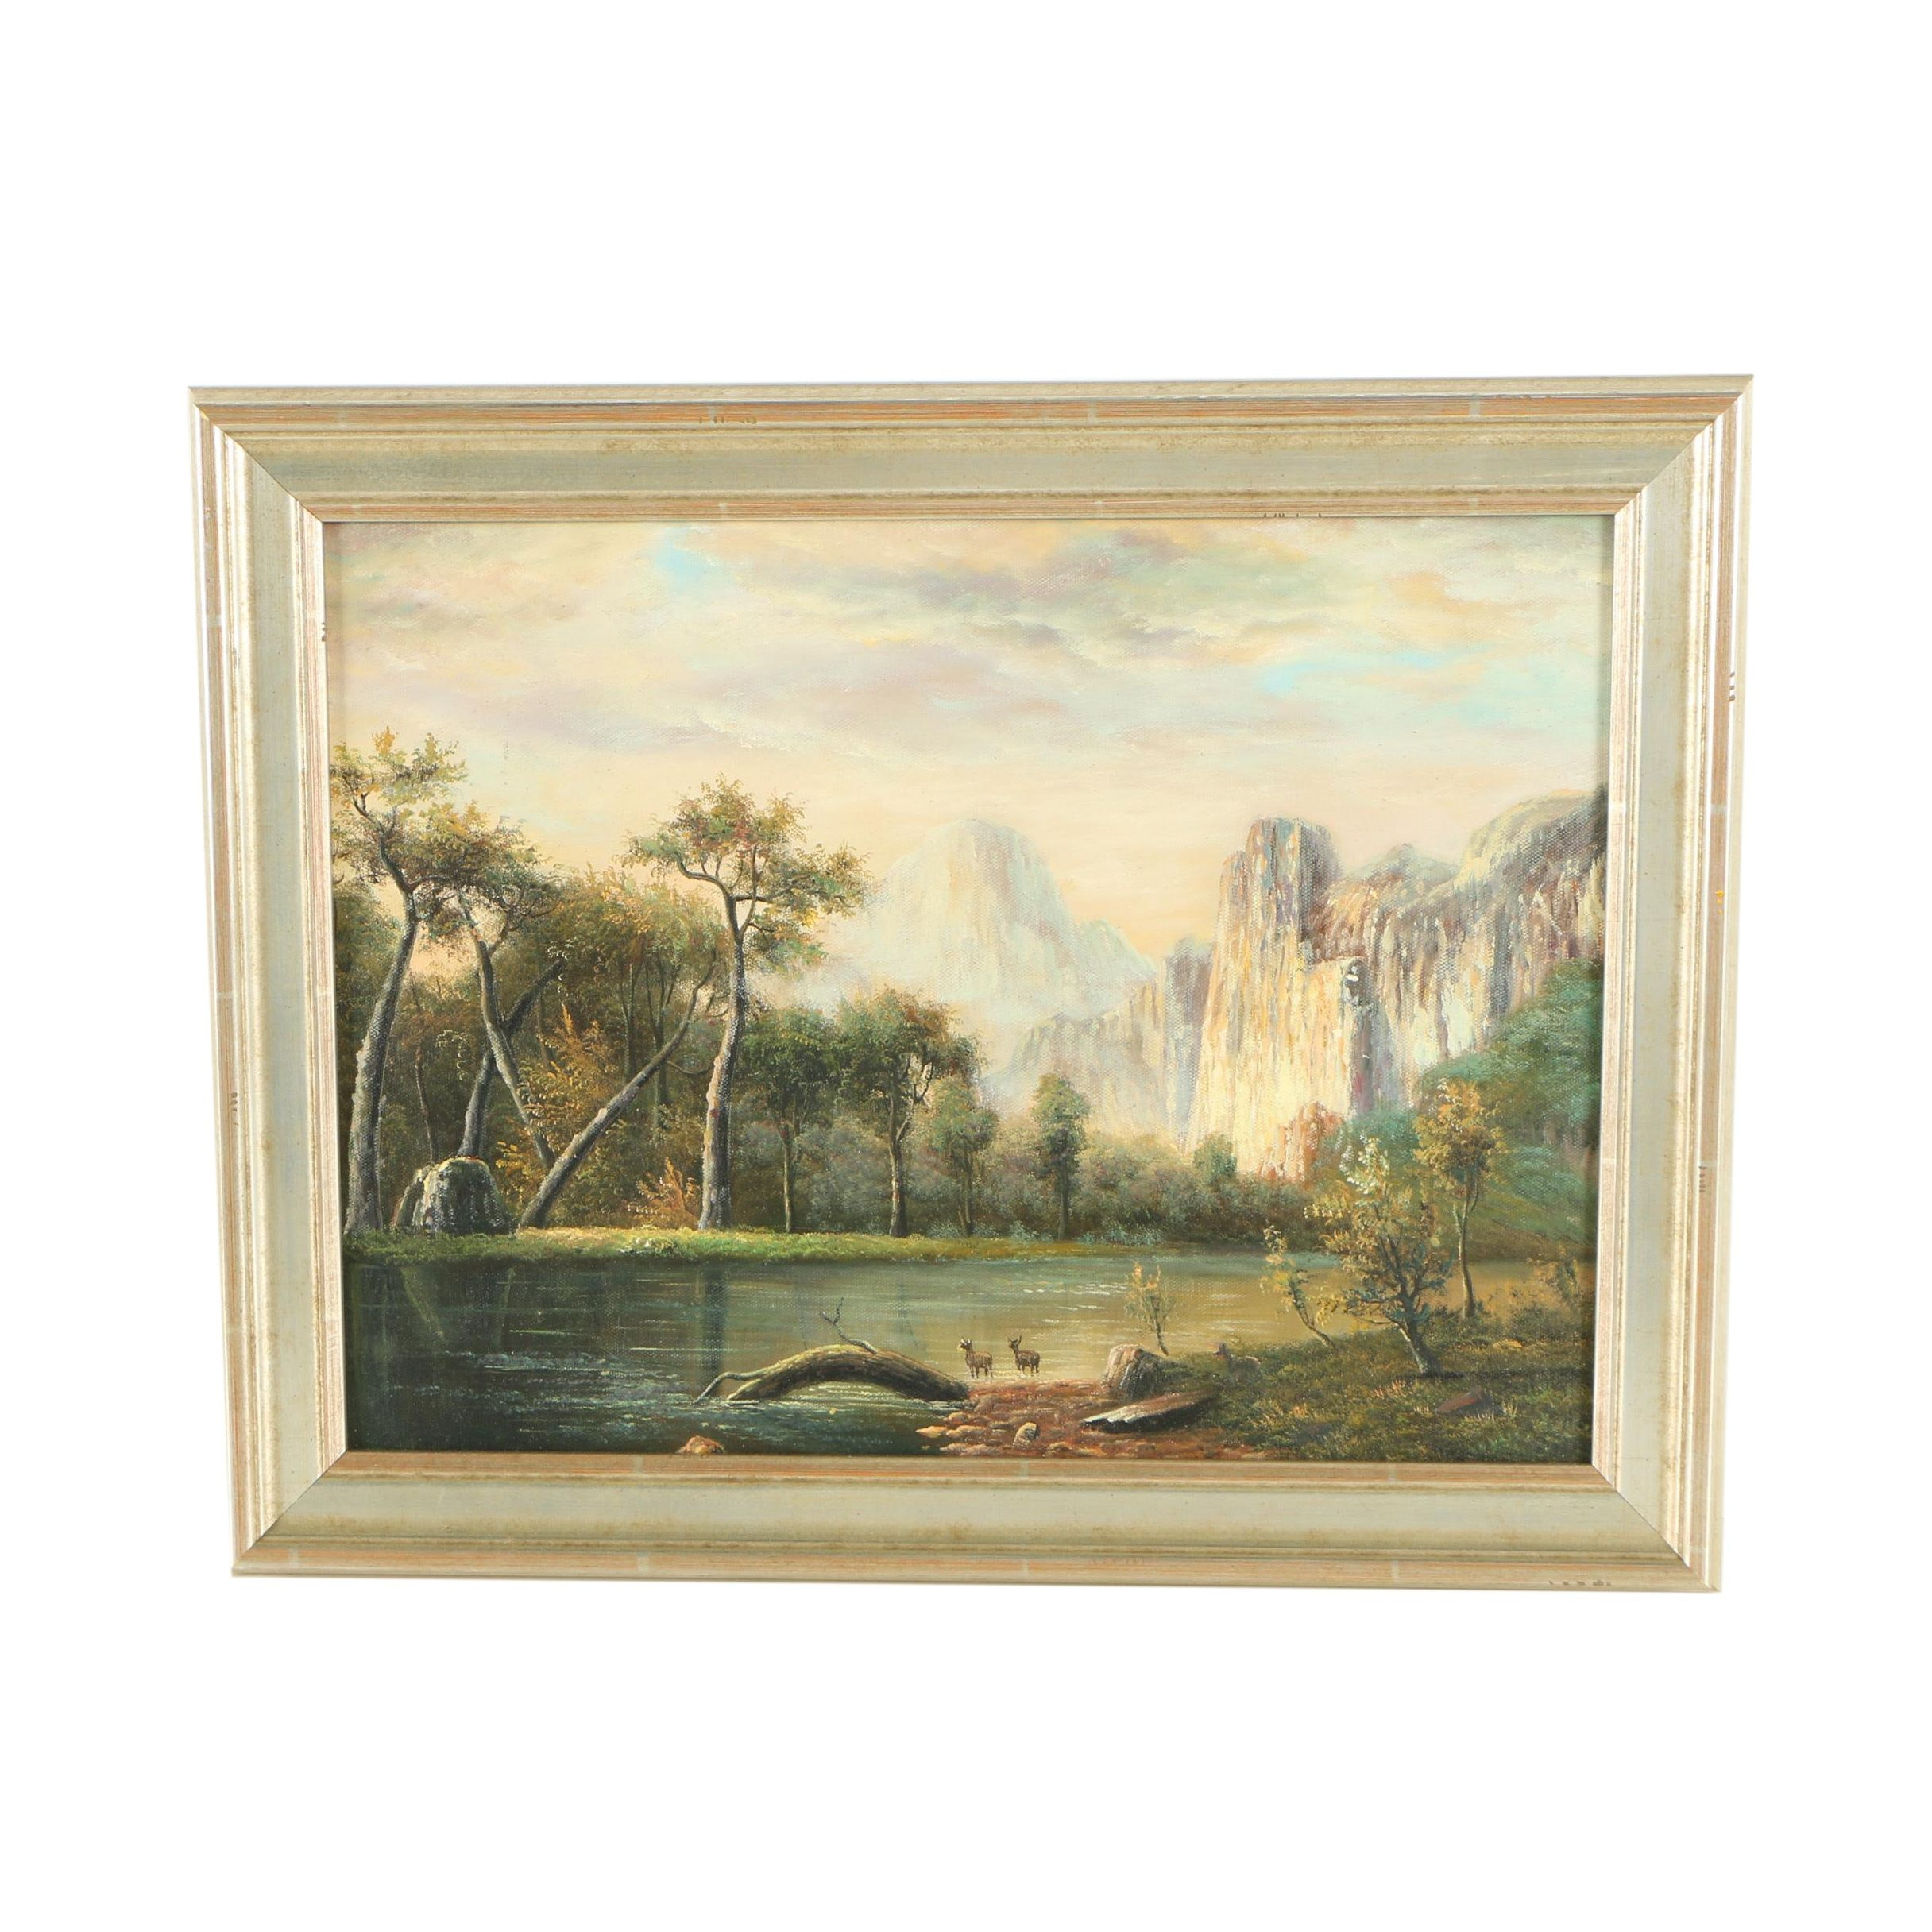 Oil Painting of a Bucolic Landscape